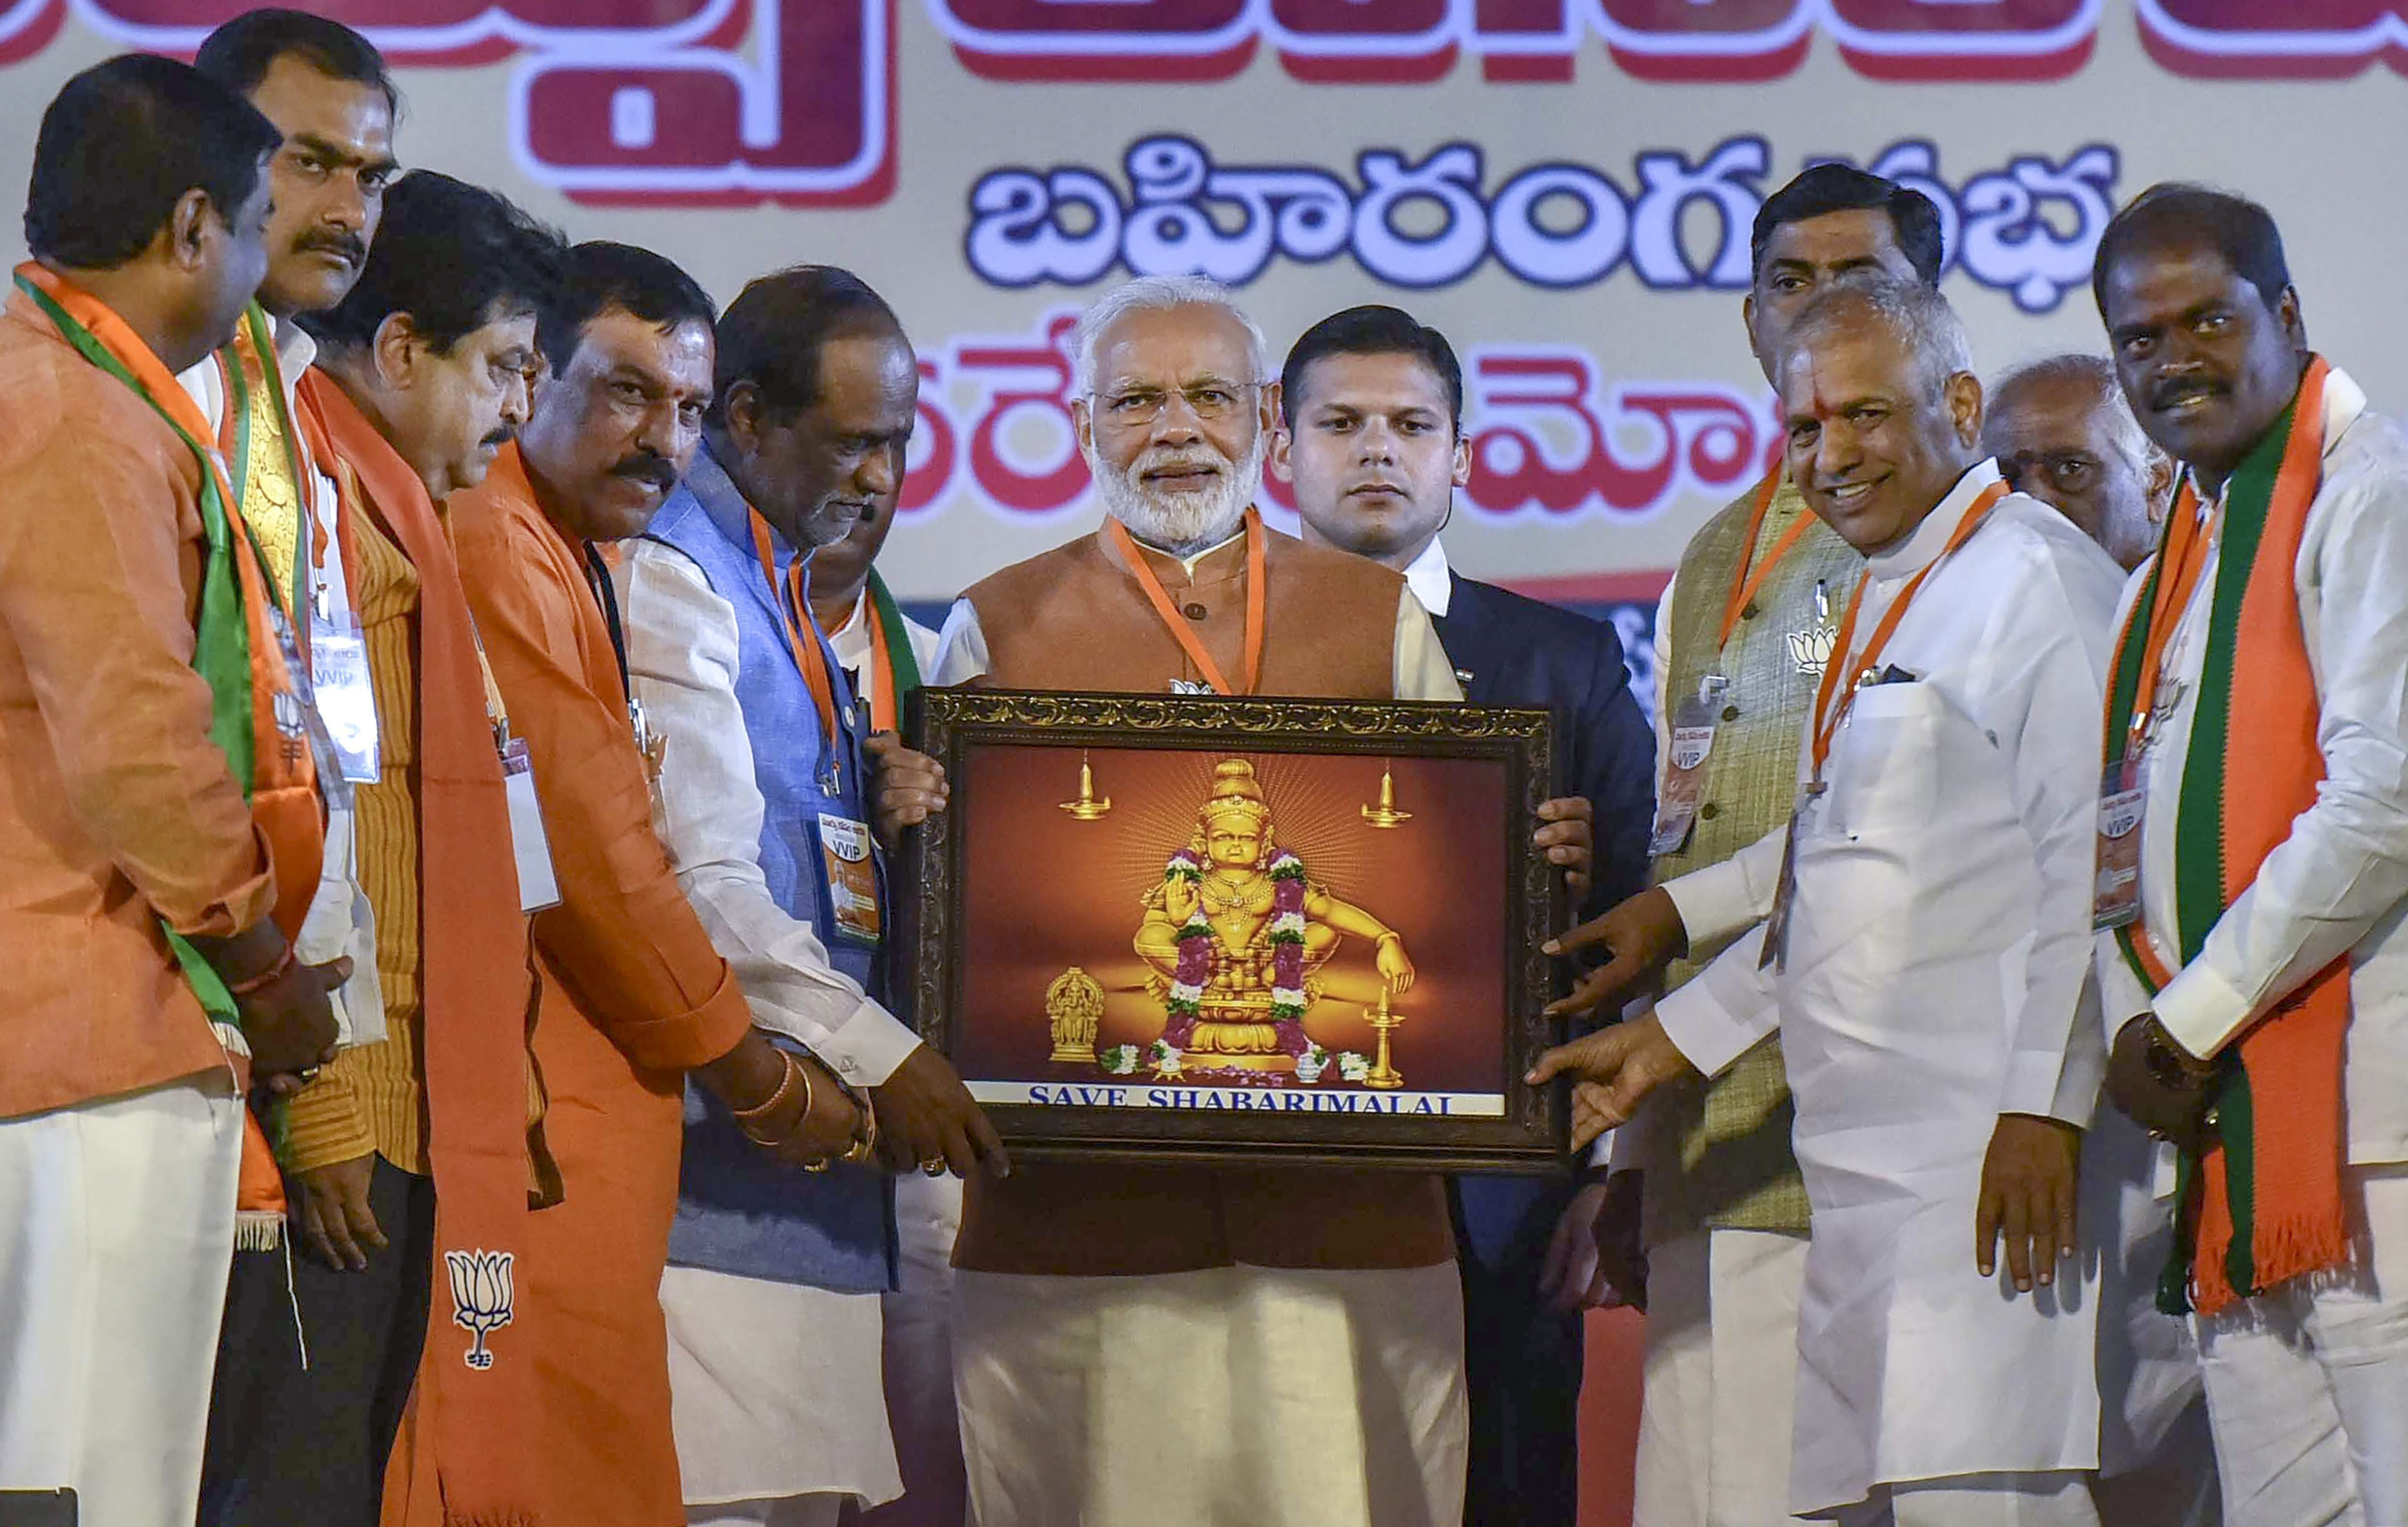 Prime Minister Narendra Modi receives a memento which has an image of Hindu god Ayyappa with 'Save Sabarimala' slogan, during an election campaign rally ahead of the state Assembly elections at LB Stadium, in Hyderabad - PTI